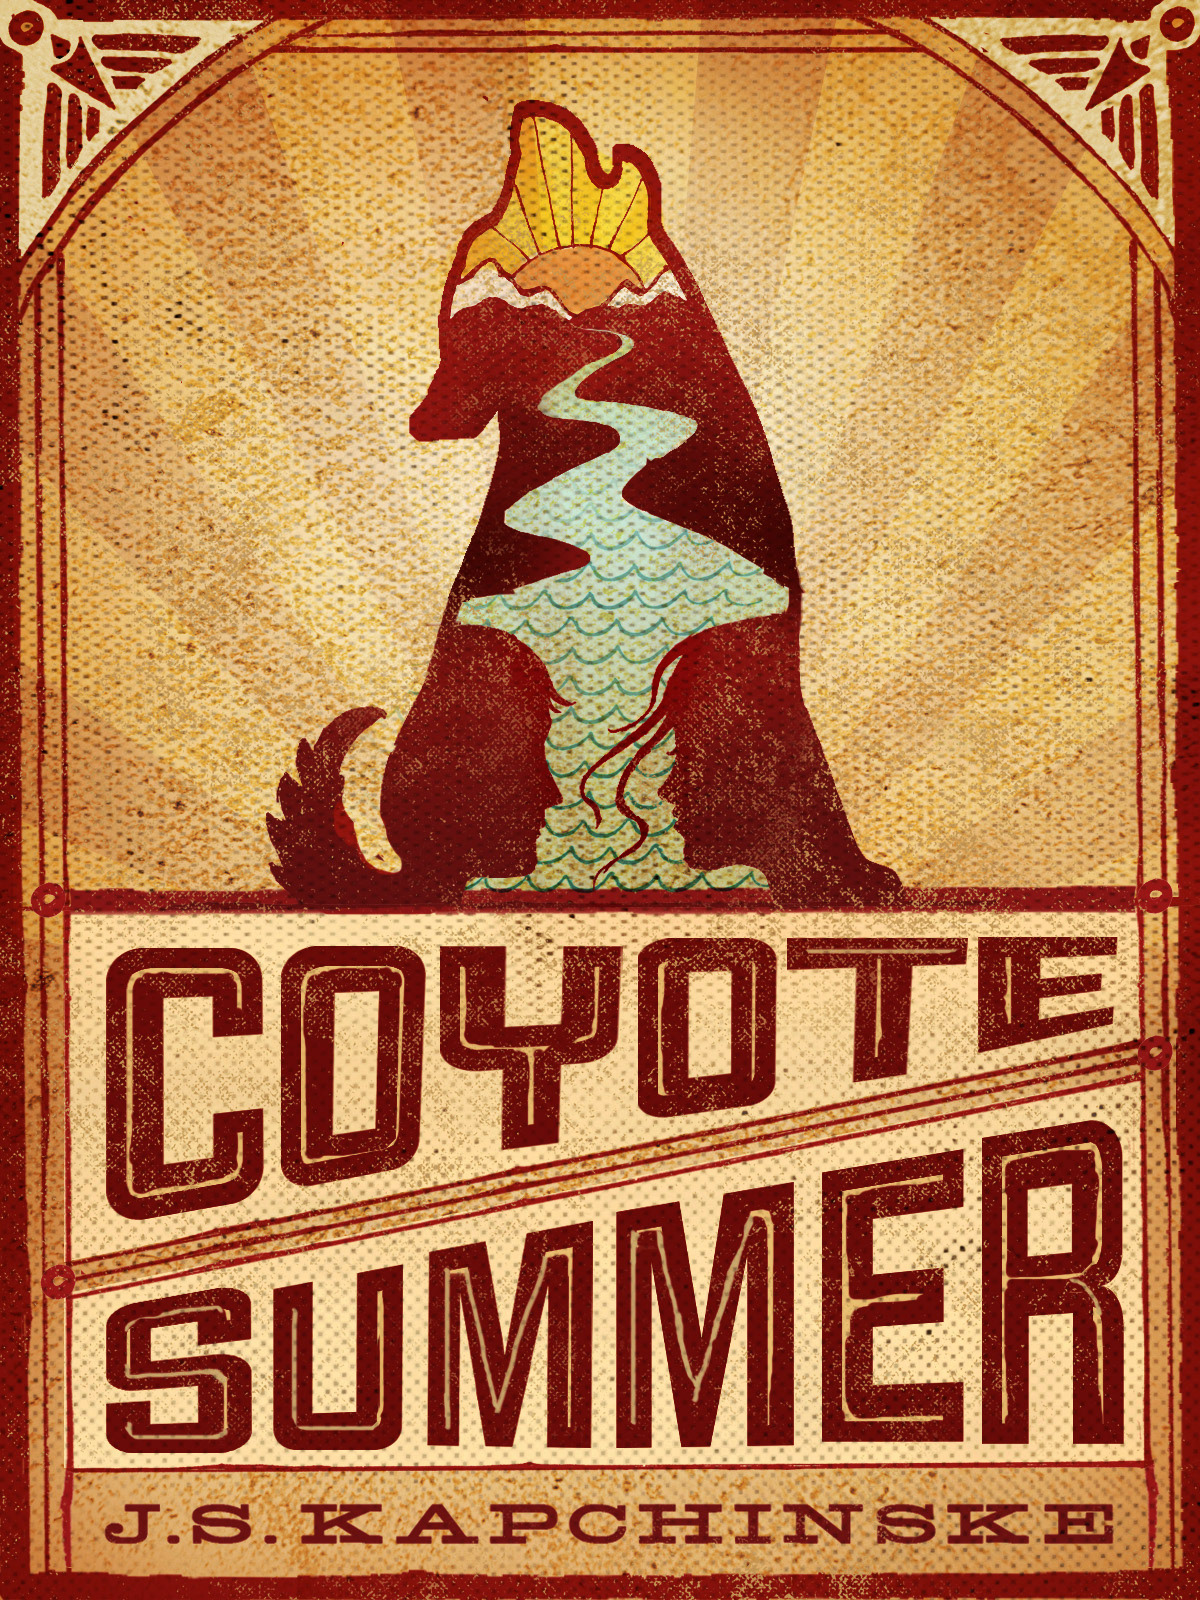 Young Adult Book Covers ~ Samantha wiley coyote summer: book cover